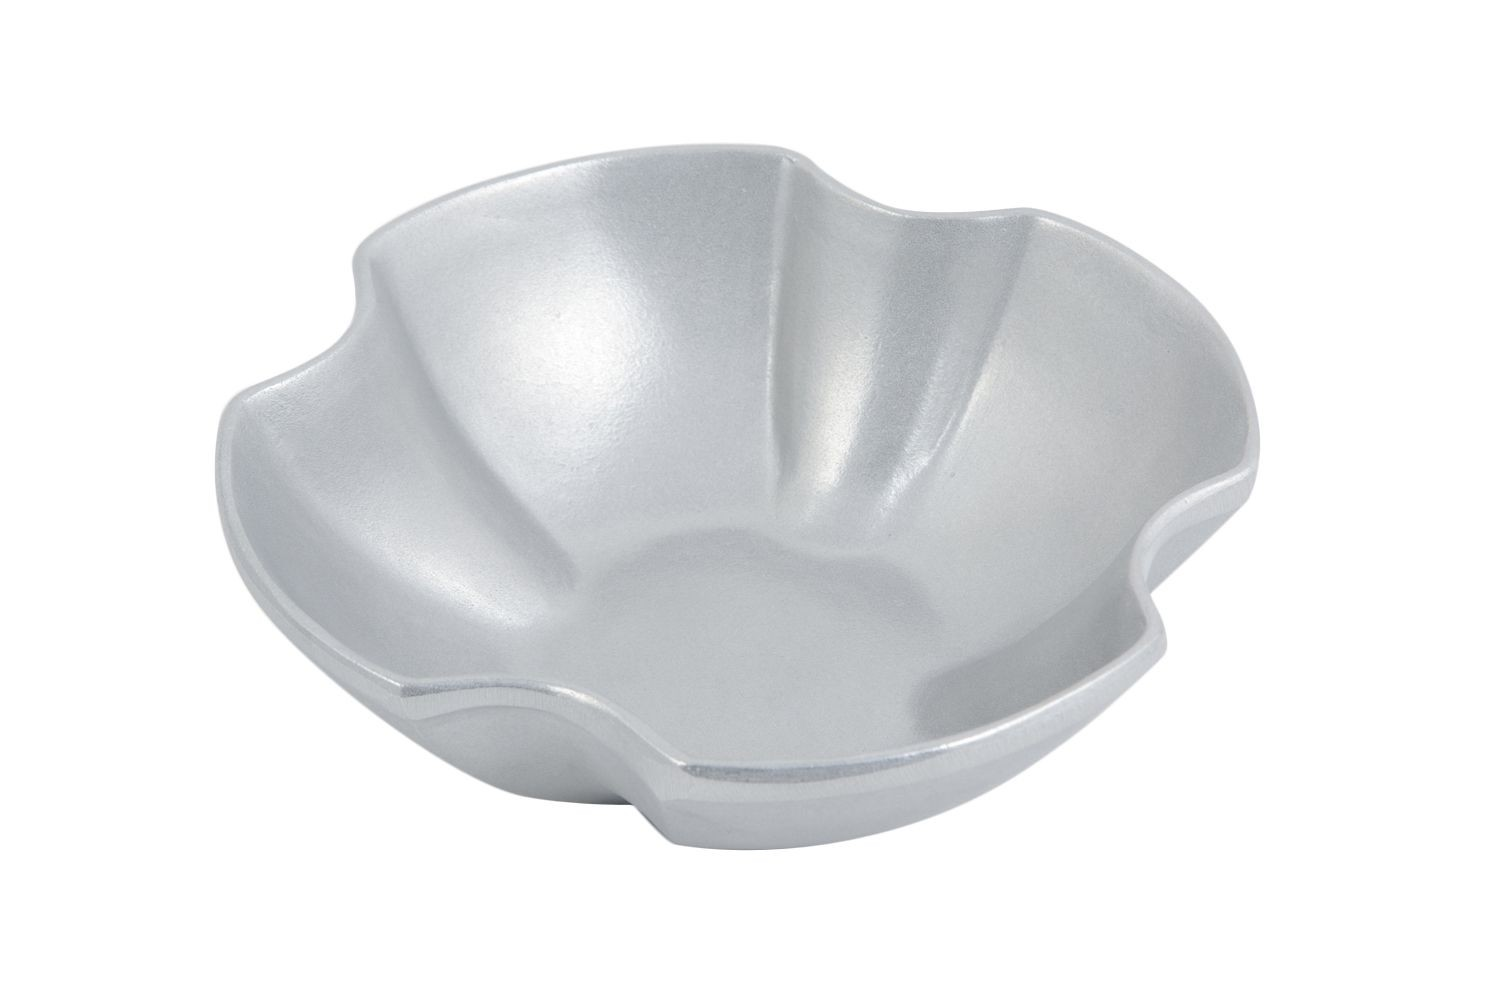 "Bon Chef 70055P Futura Small Bowl, Pewter Glo 9 3/8"" x 9 3/8"" x 3 1/8"", Set of 2"